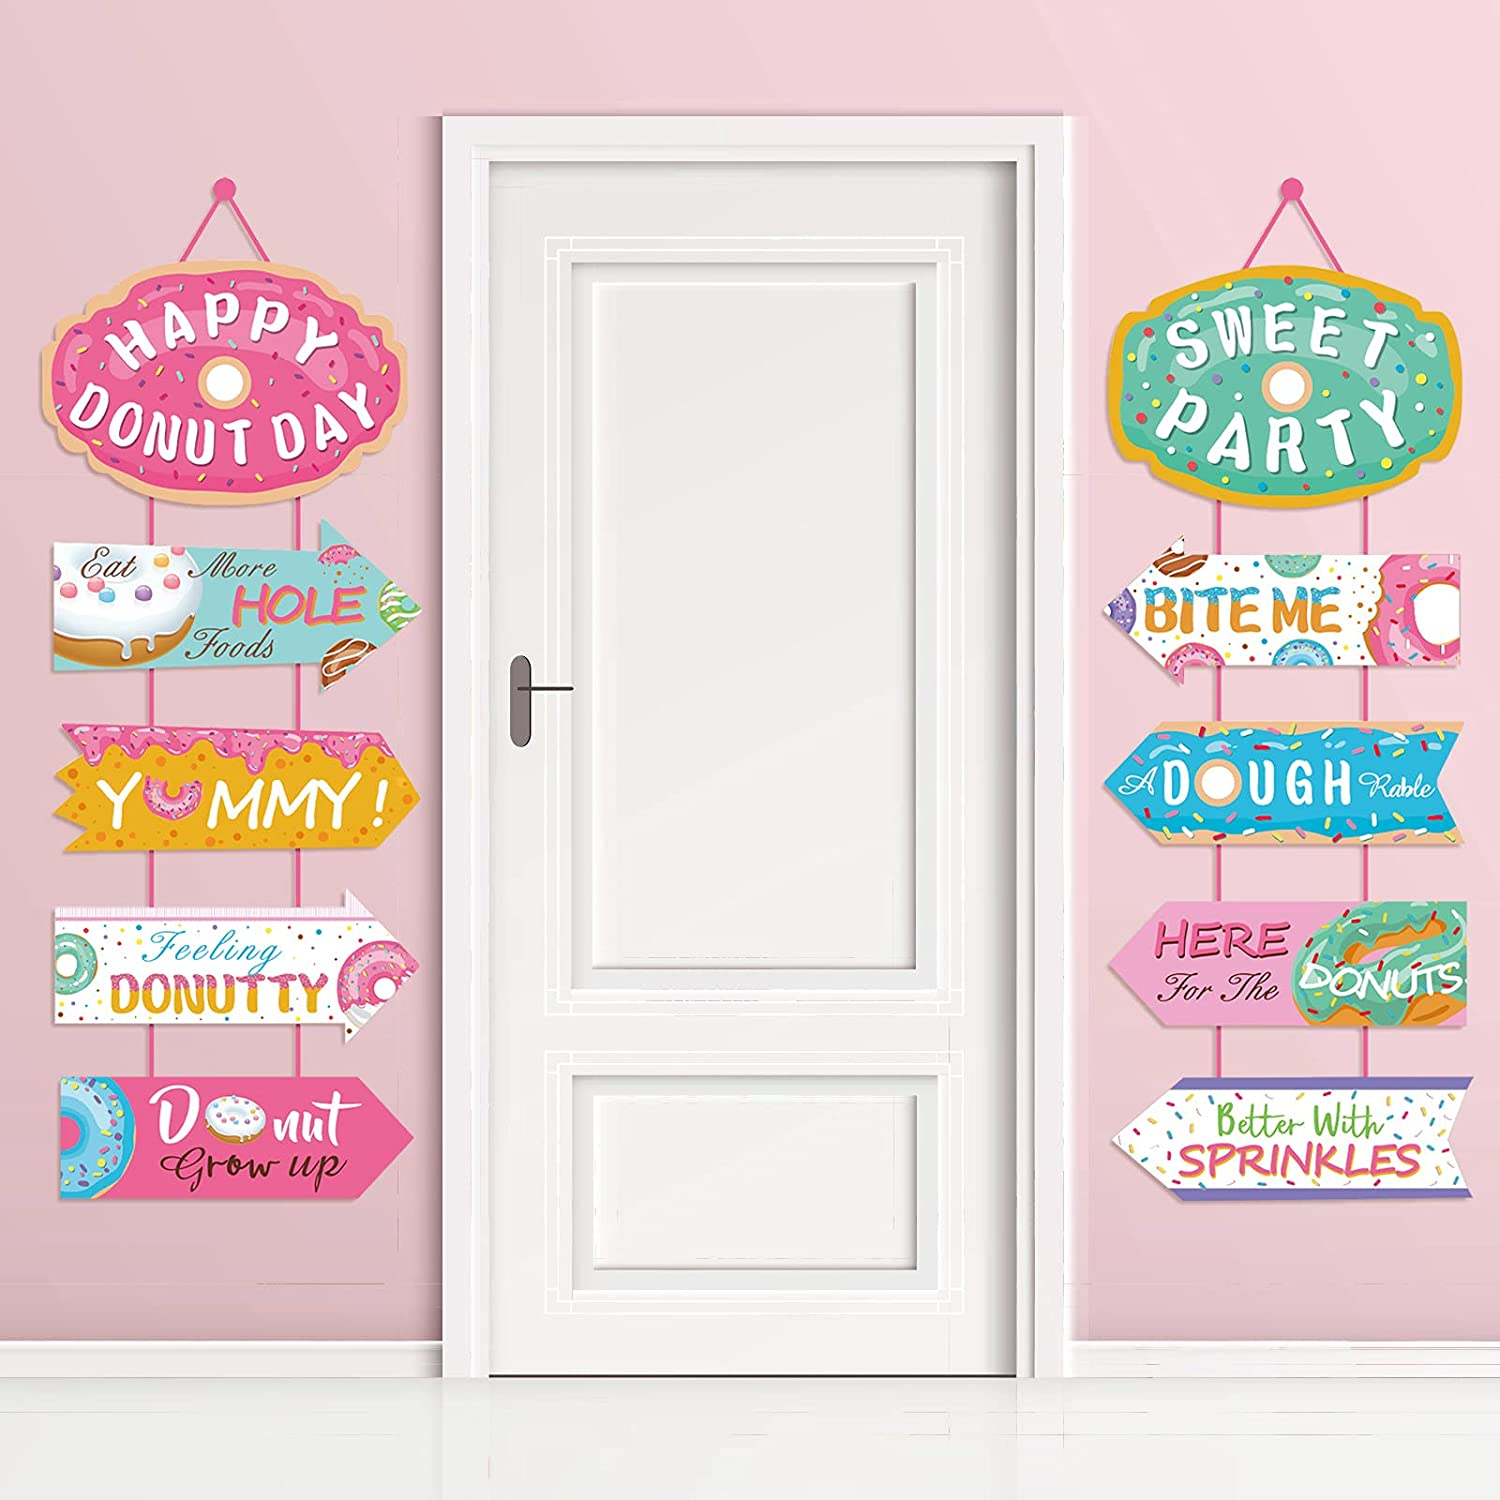 Donut Party Supplies Hanging Porch Sign Banner - Donut Food Theme Party/Tea/Doughnut Baby Shower/Birthday Party Decorations Favors Paper Door Garland